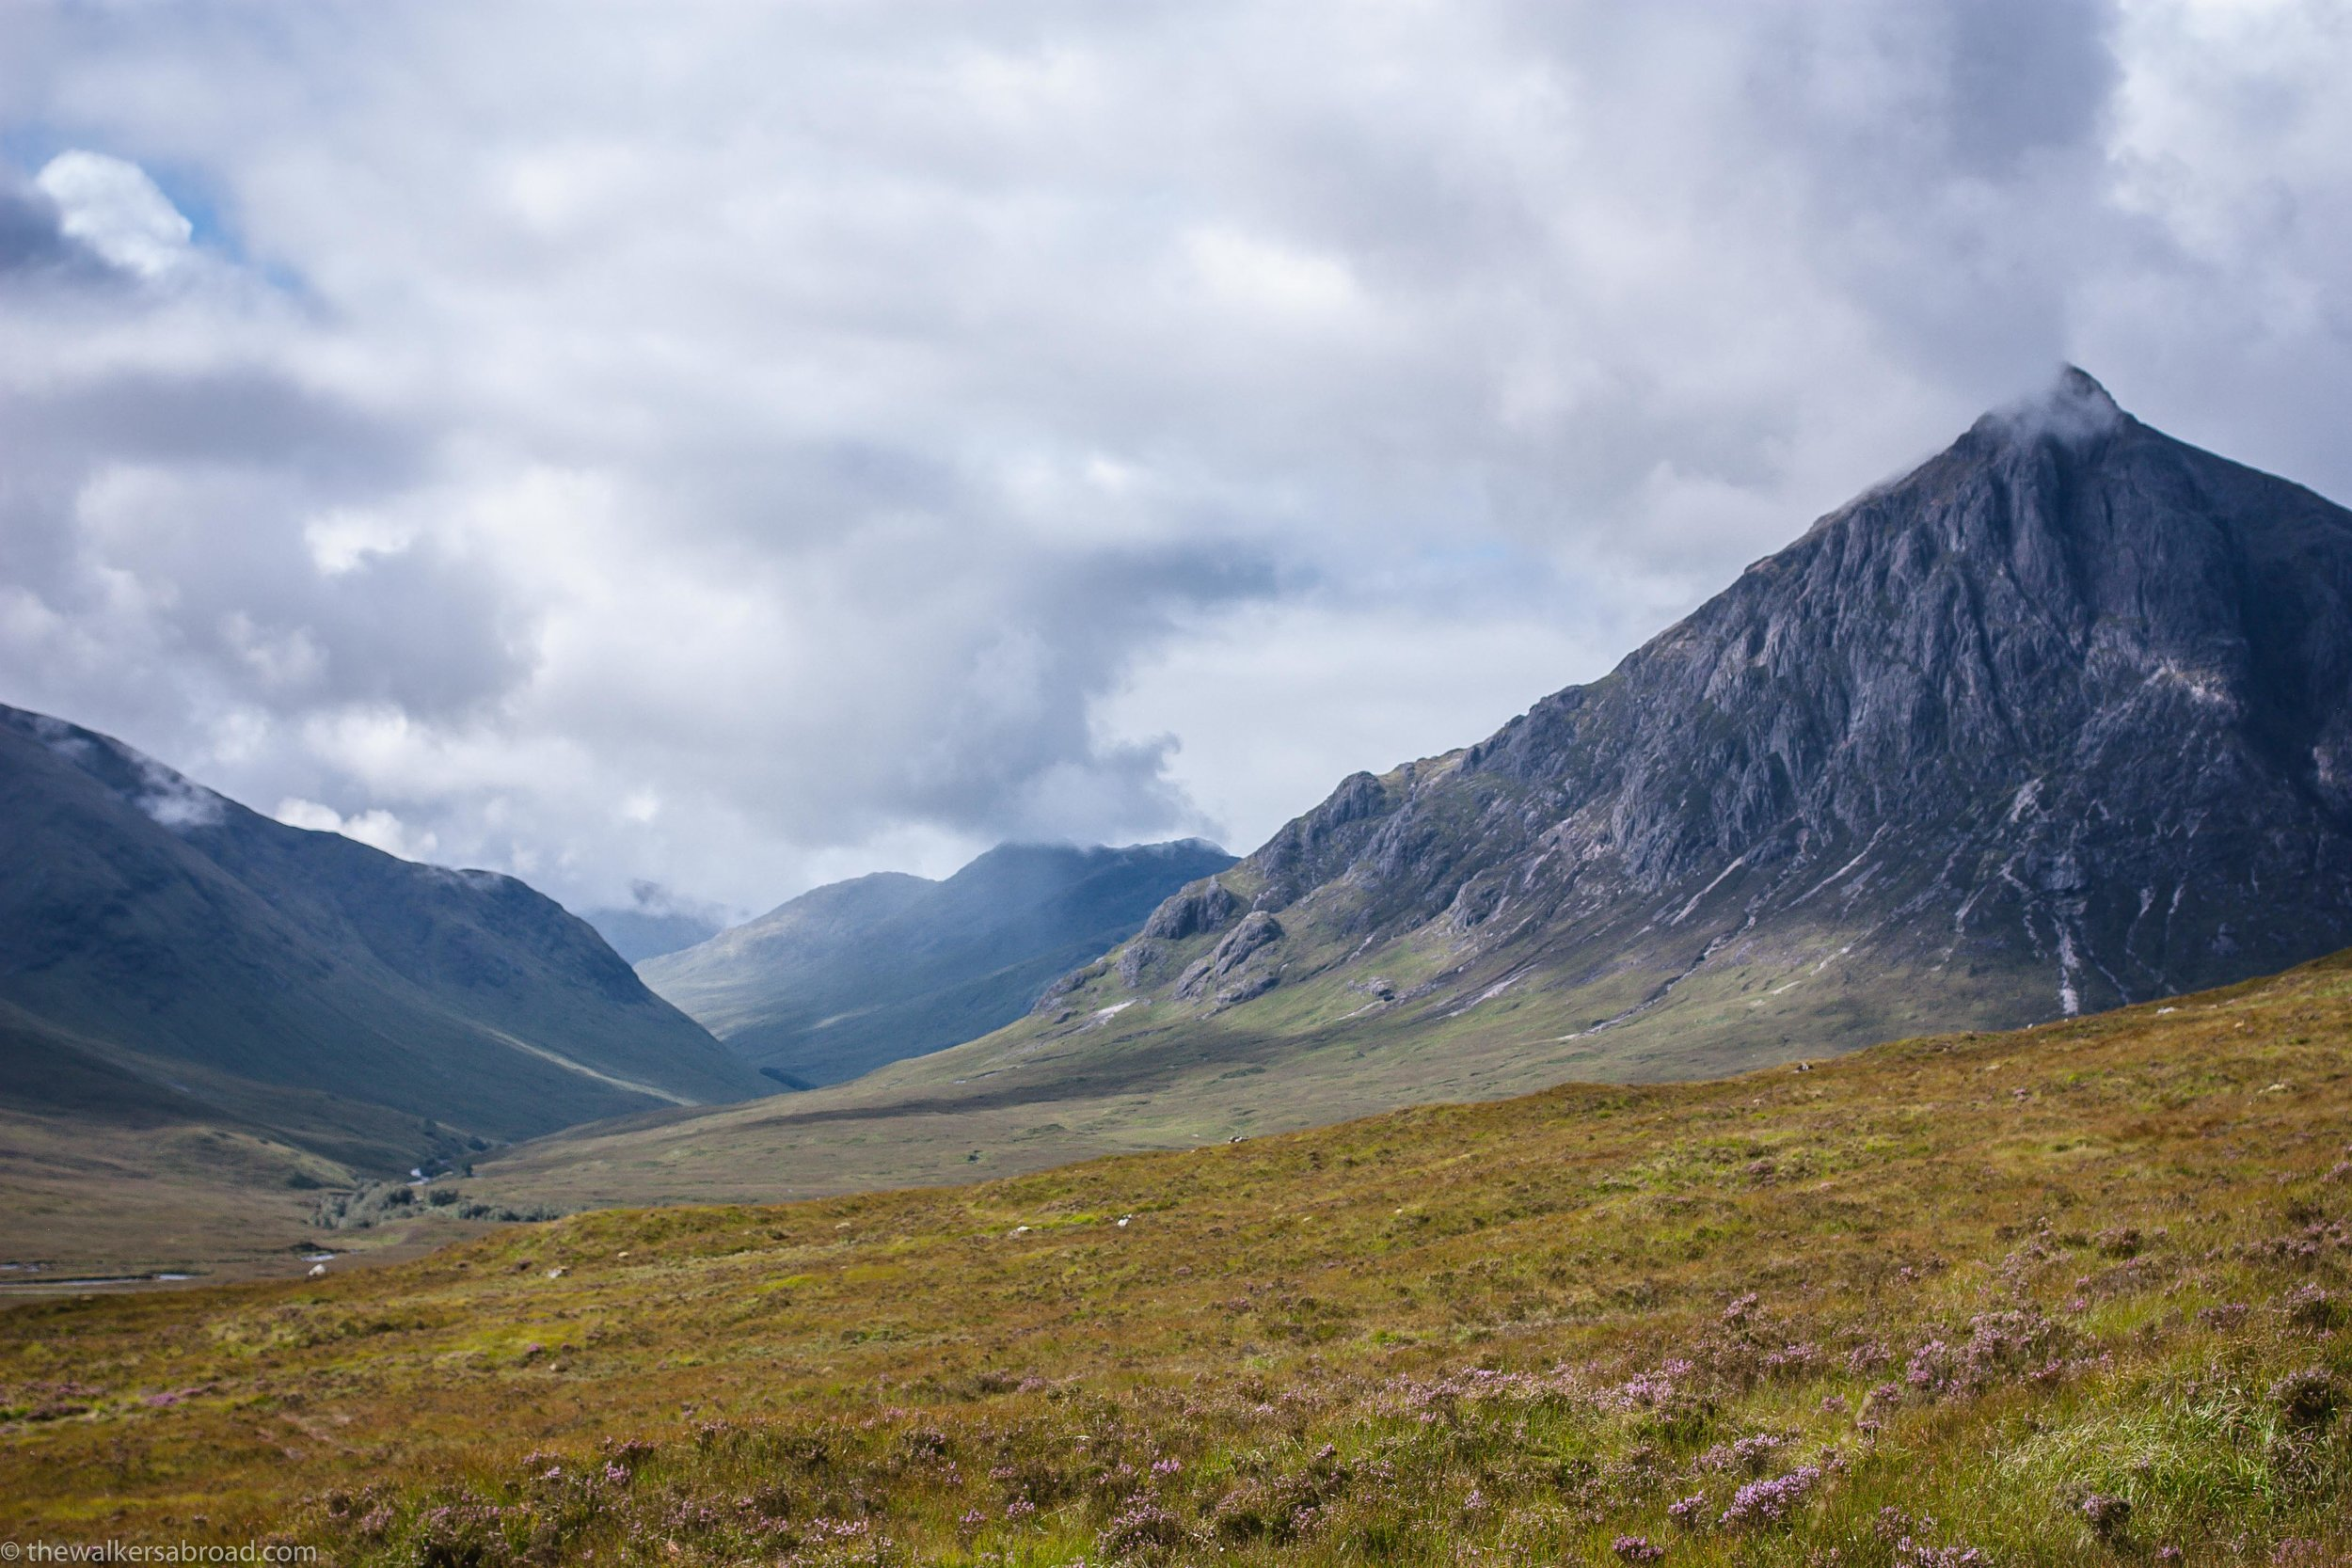 From earlier this year as I hiked through part of Glencoe.